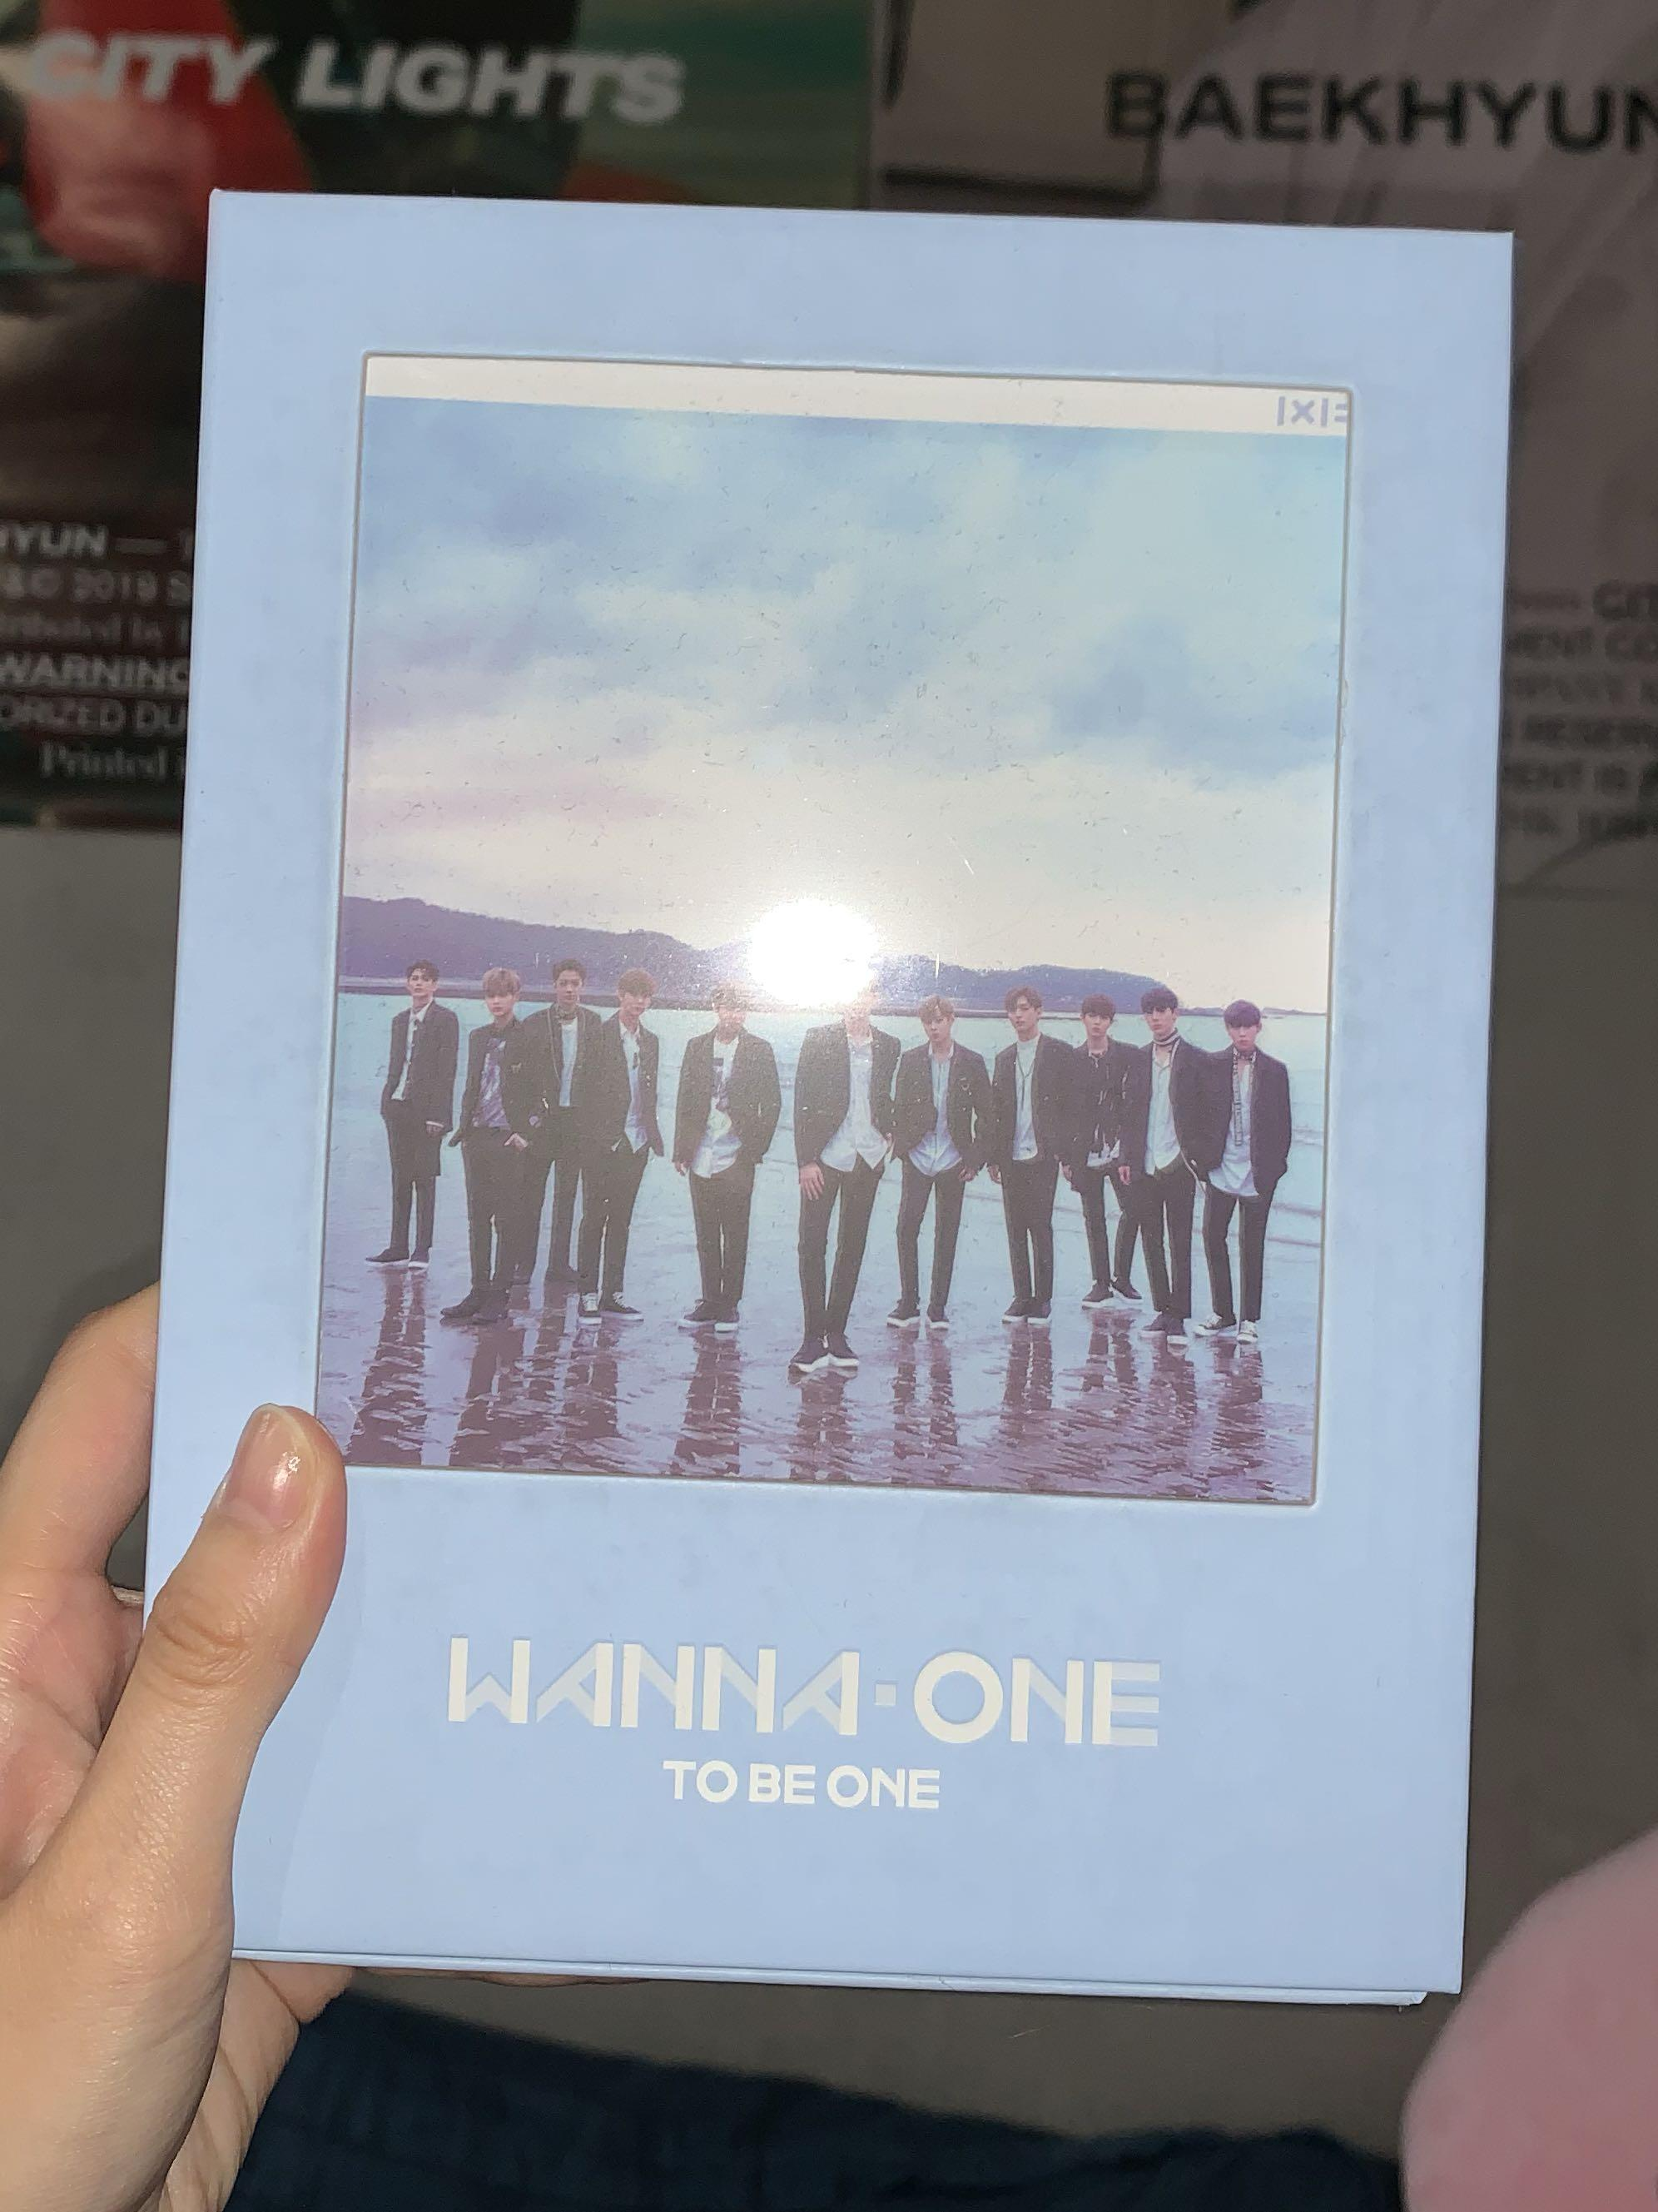 Wanna One 1 X 1 To Be One Album Guanlin Kuanlin Full Set